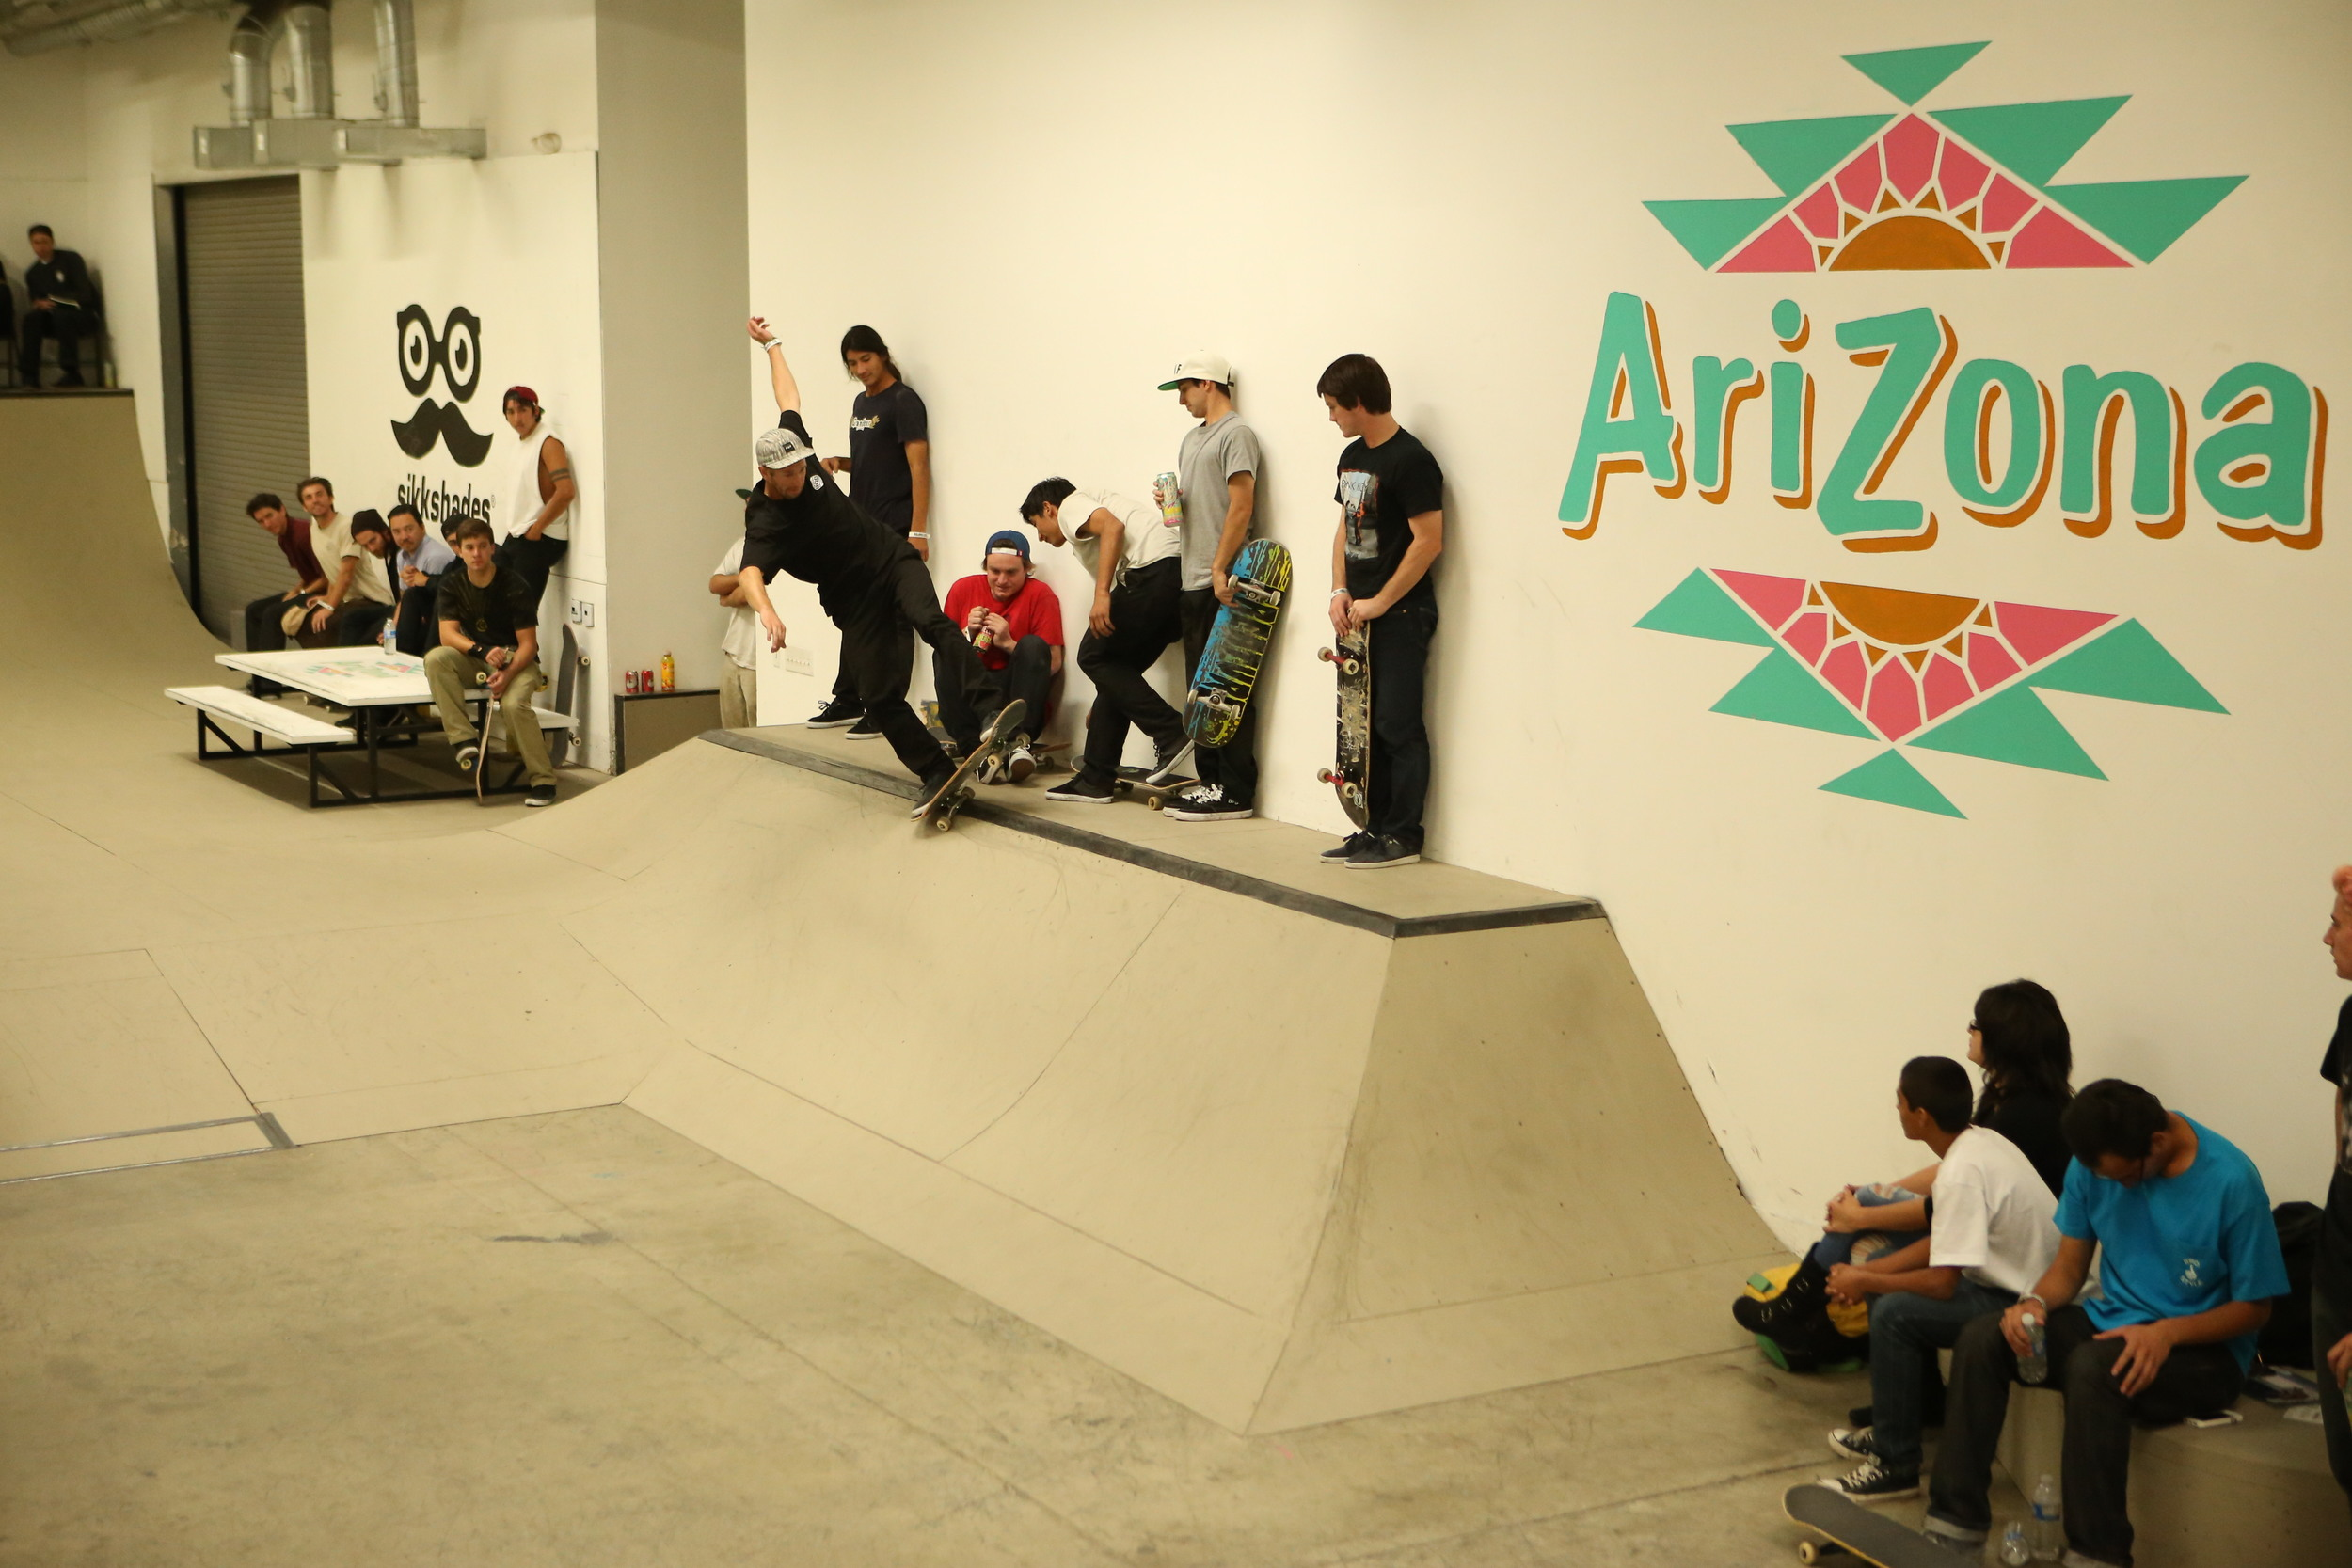 Robby Hargreaves_5-0 Grind to Fakie.JPG